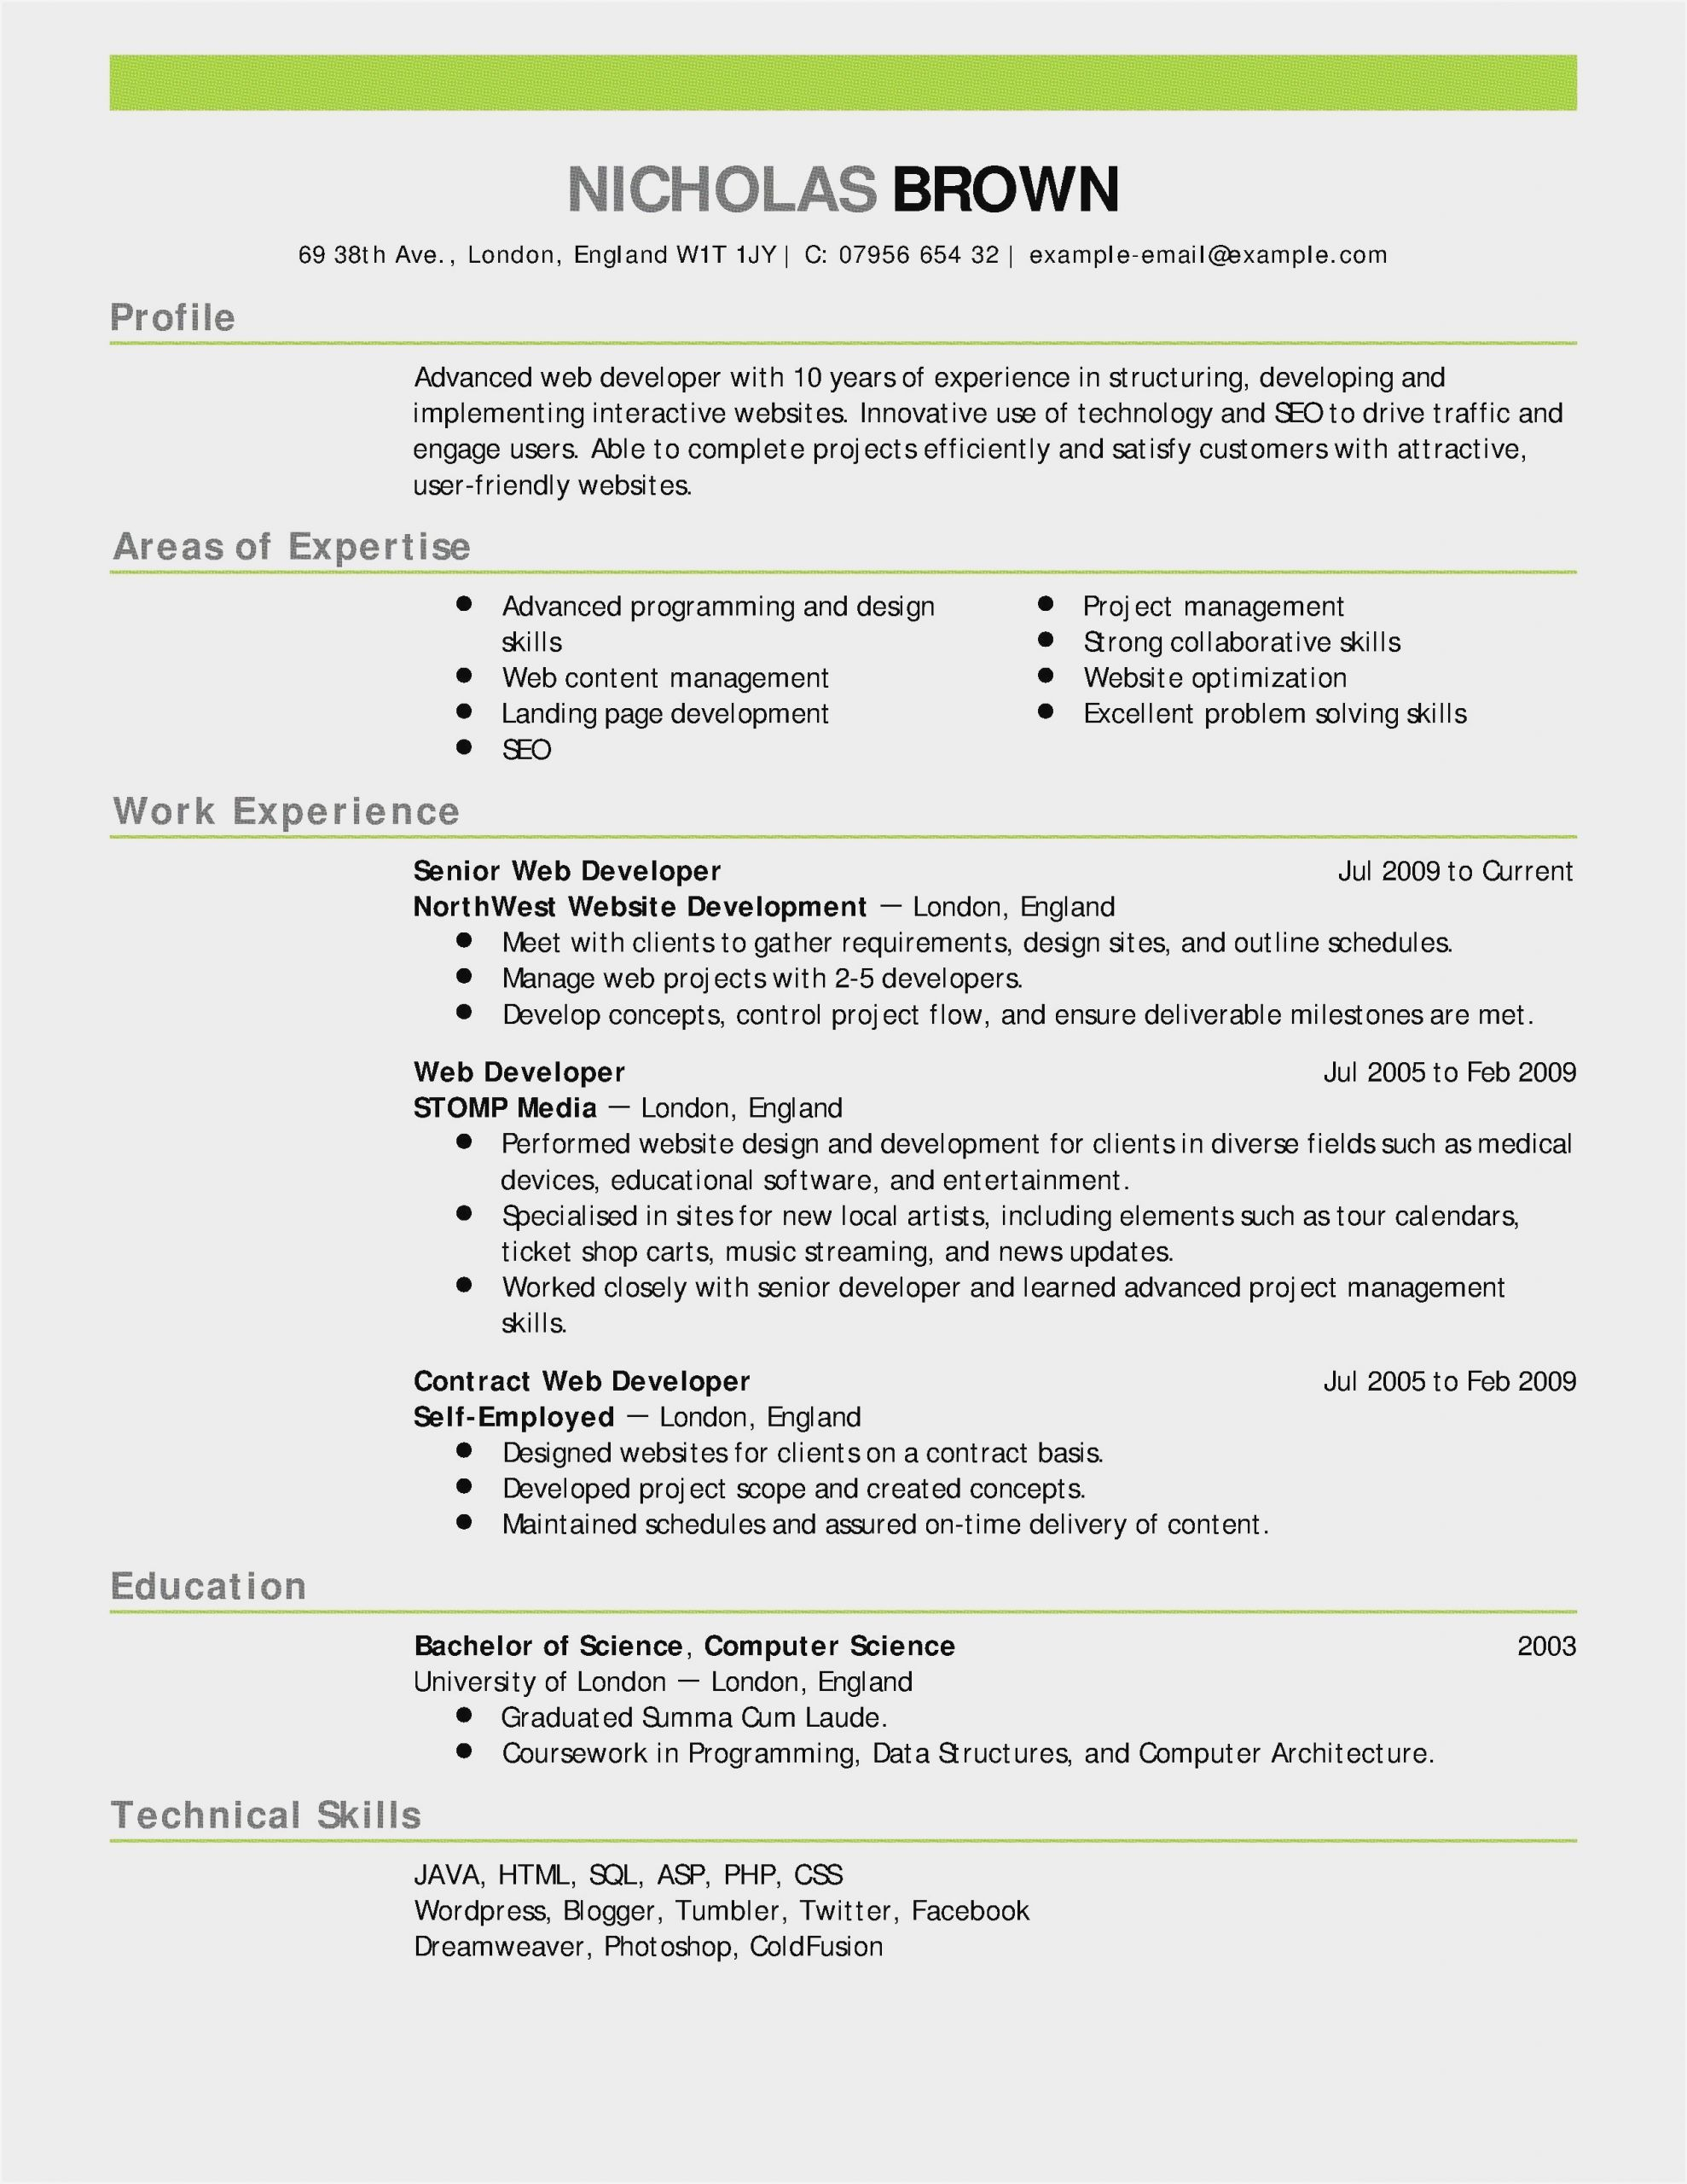 resume templates for college admission sample format university scaled dress golf Resume Resume Format For University Admission